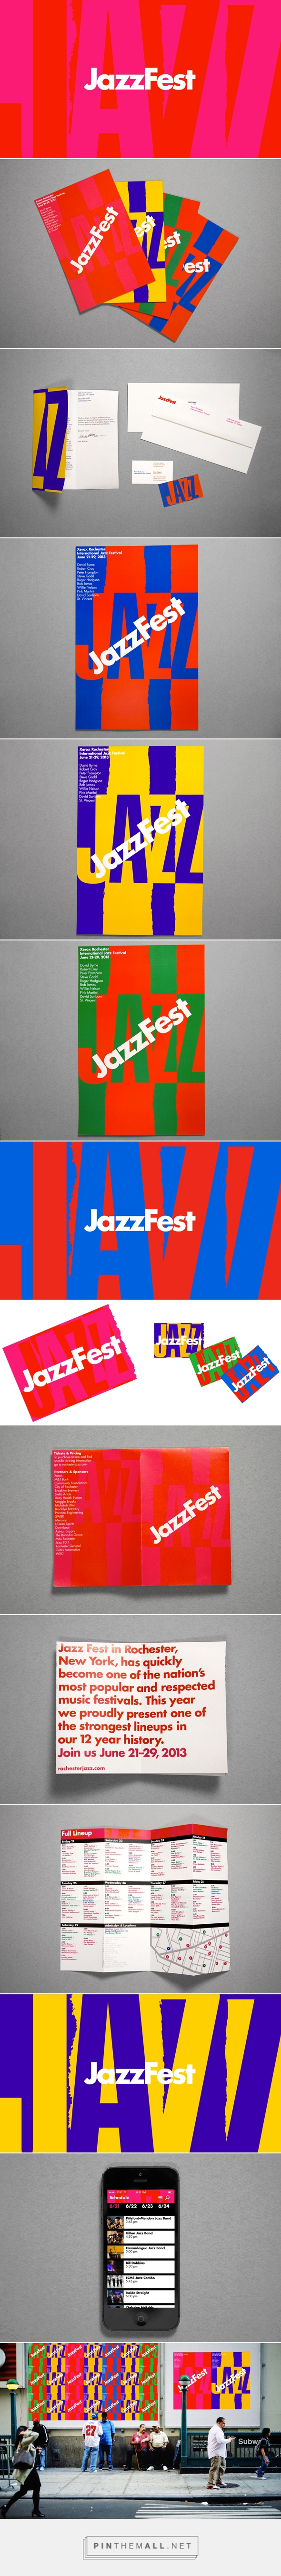 Xerox Jazz Fest – Visual Journal - created via https://pinthemall.net